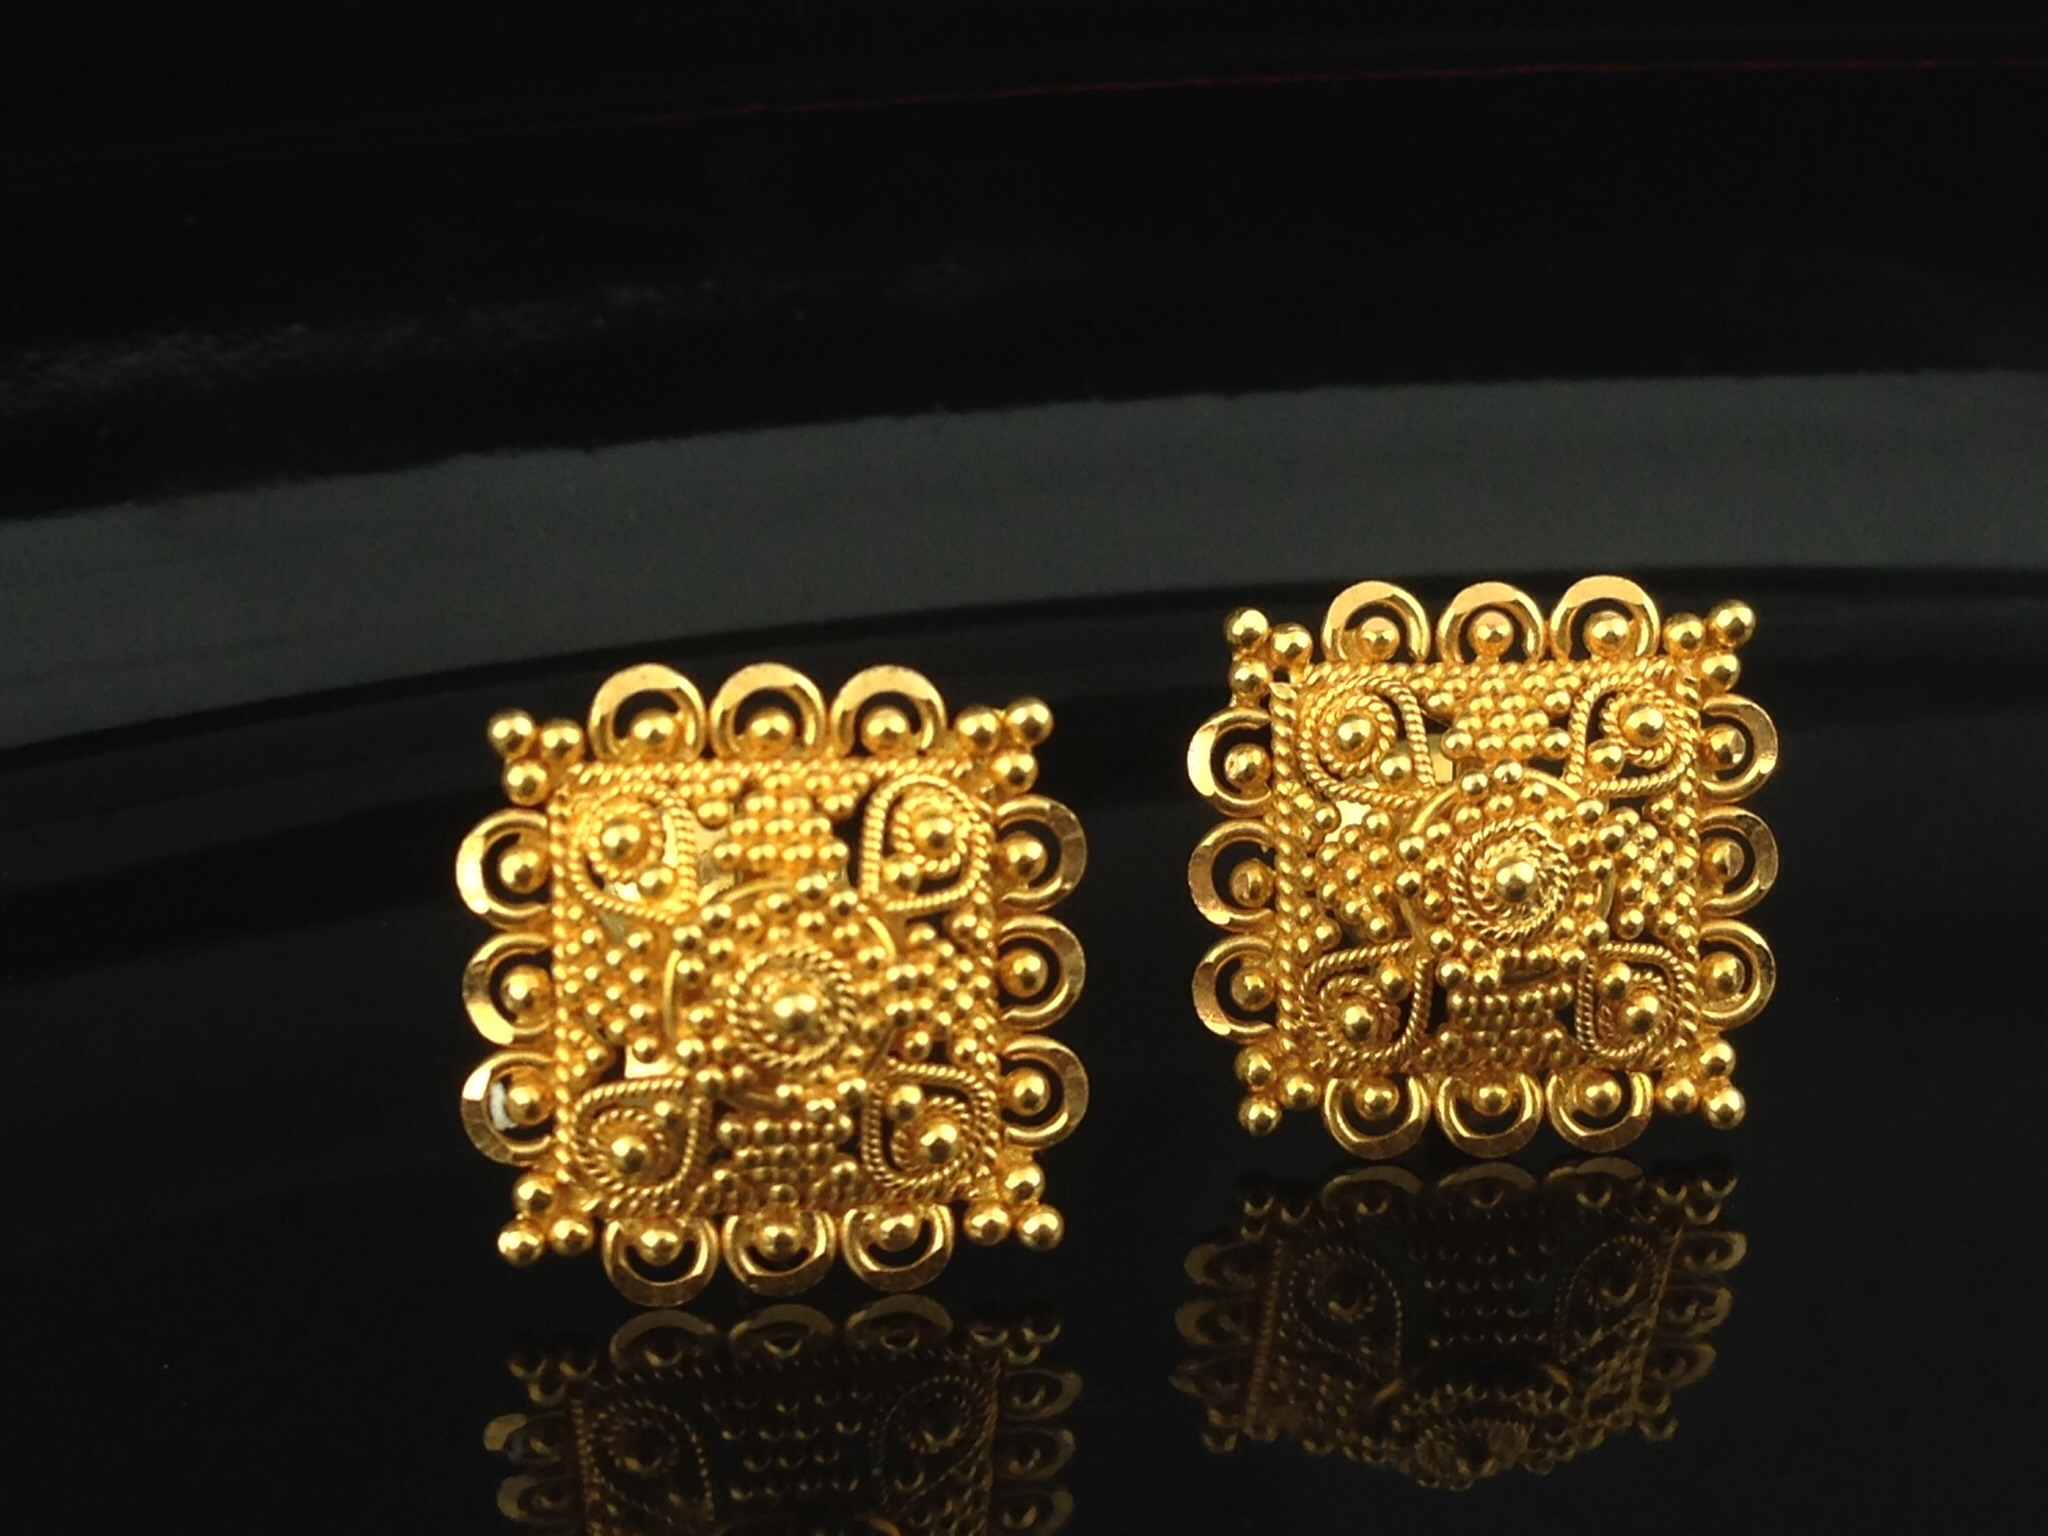 93e3cfd71 22k Gold Stud Earrings 4.5 Grams, Indian, Kundan, Islamic, and Gold Jewelry  in Atlanta and Online